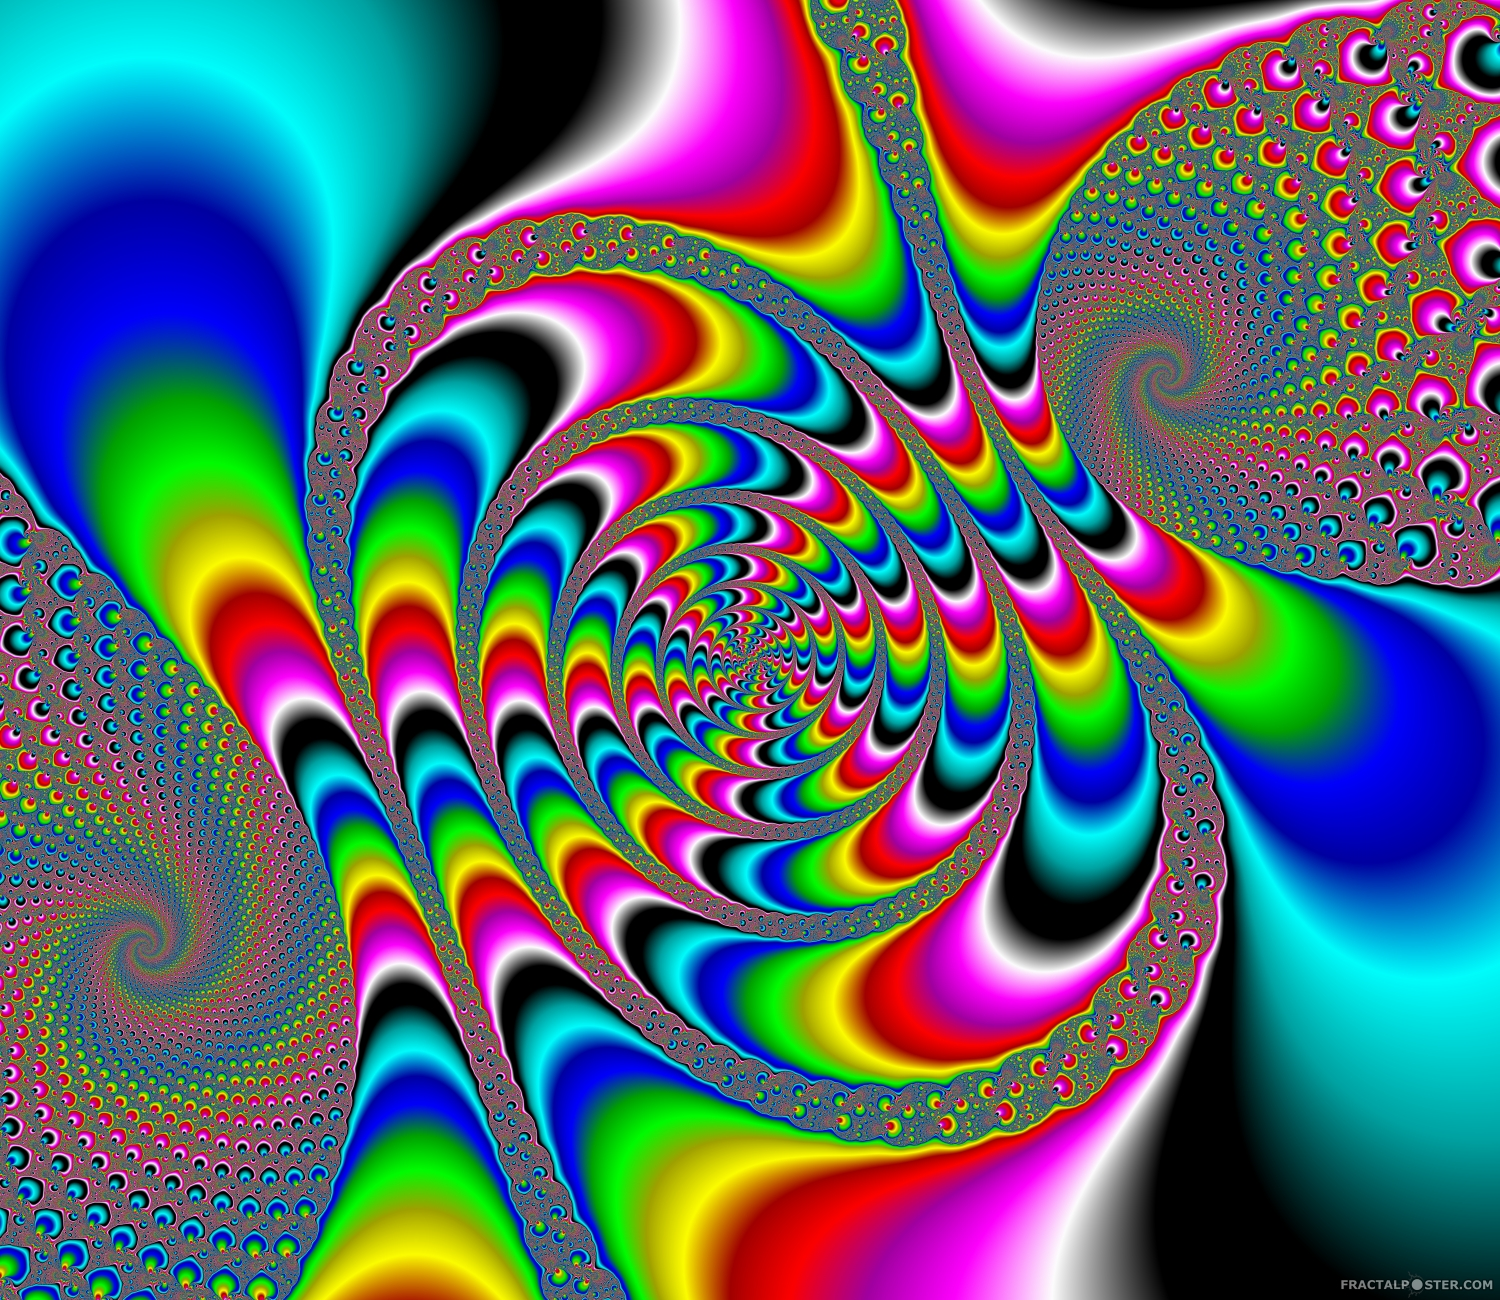 Quot Rainbow Fun 1 Quot Fractal Image By Orbulon Hd Wallpapers